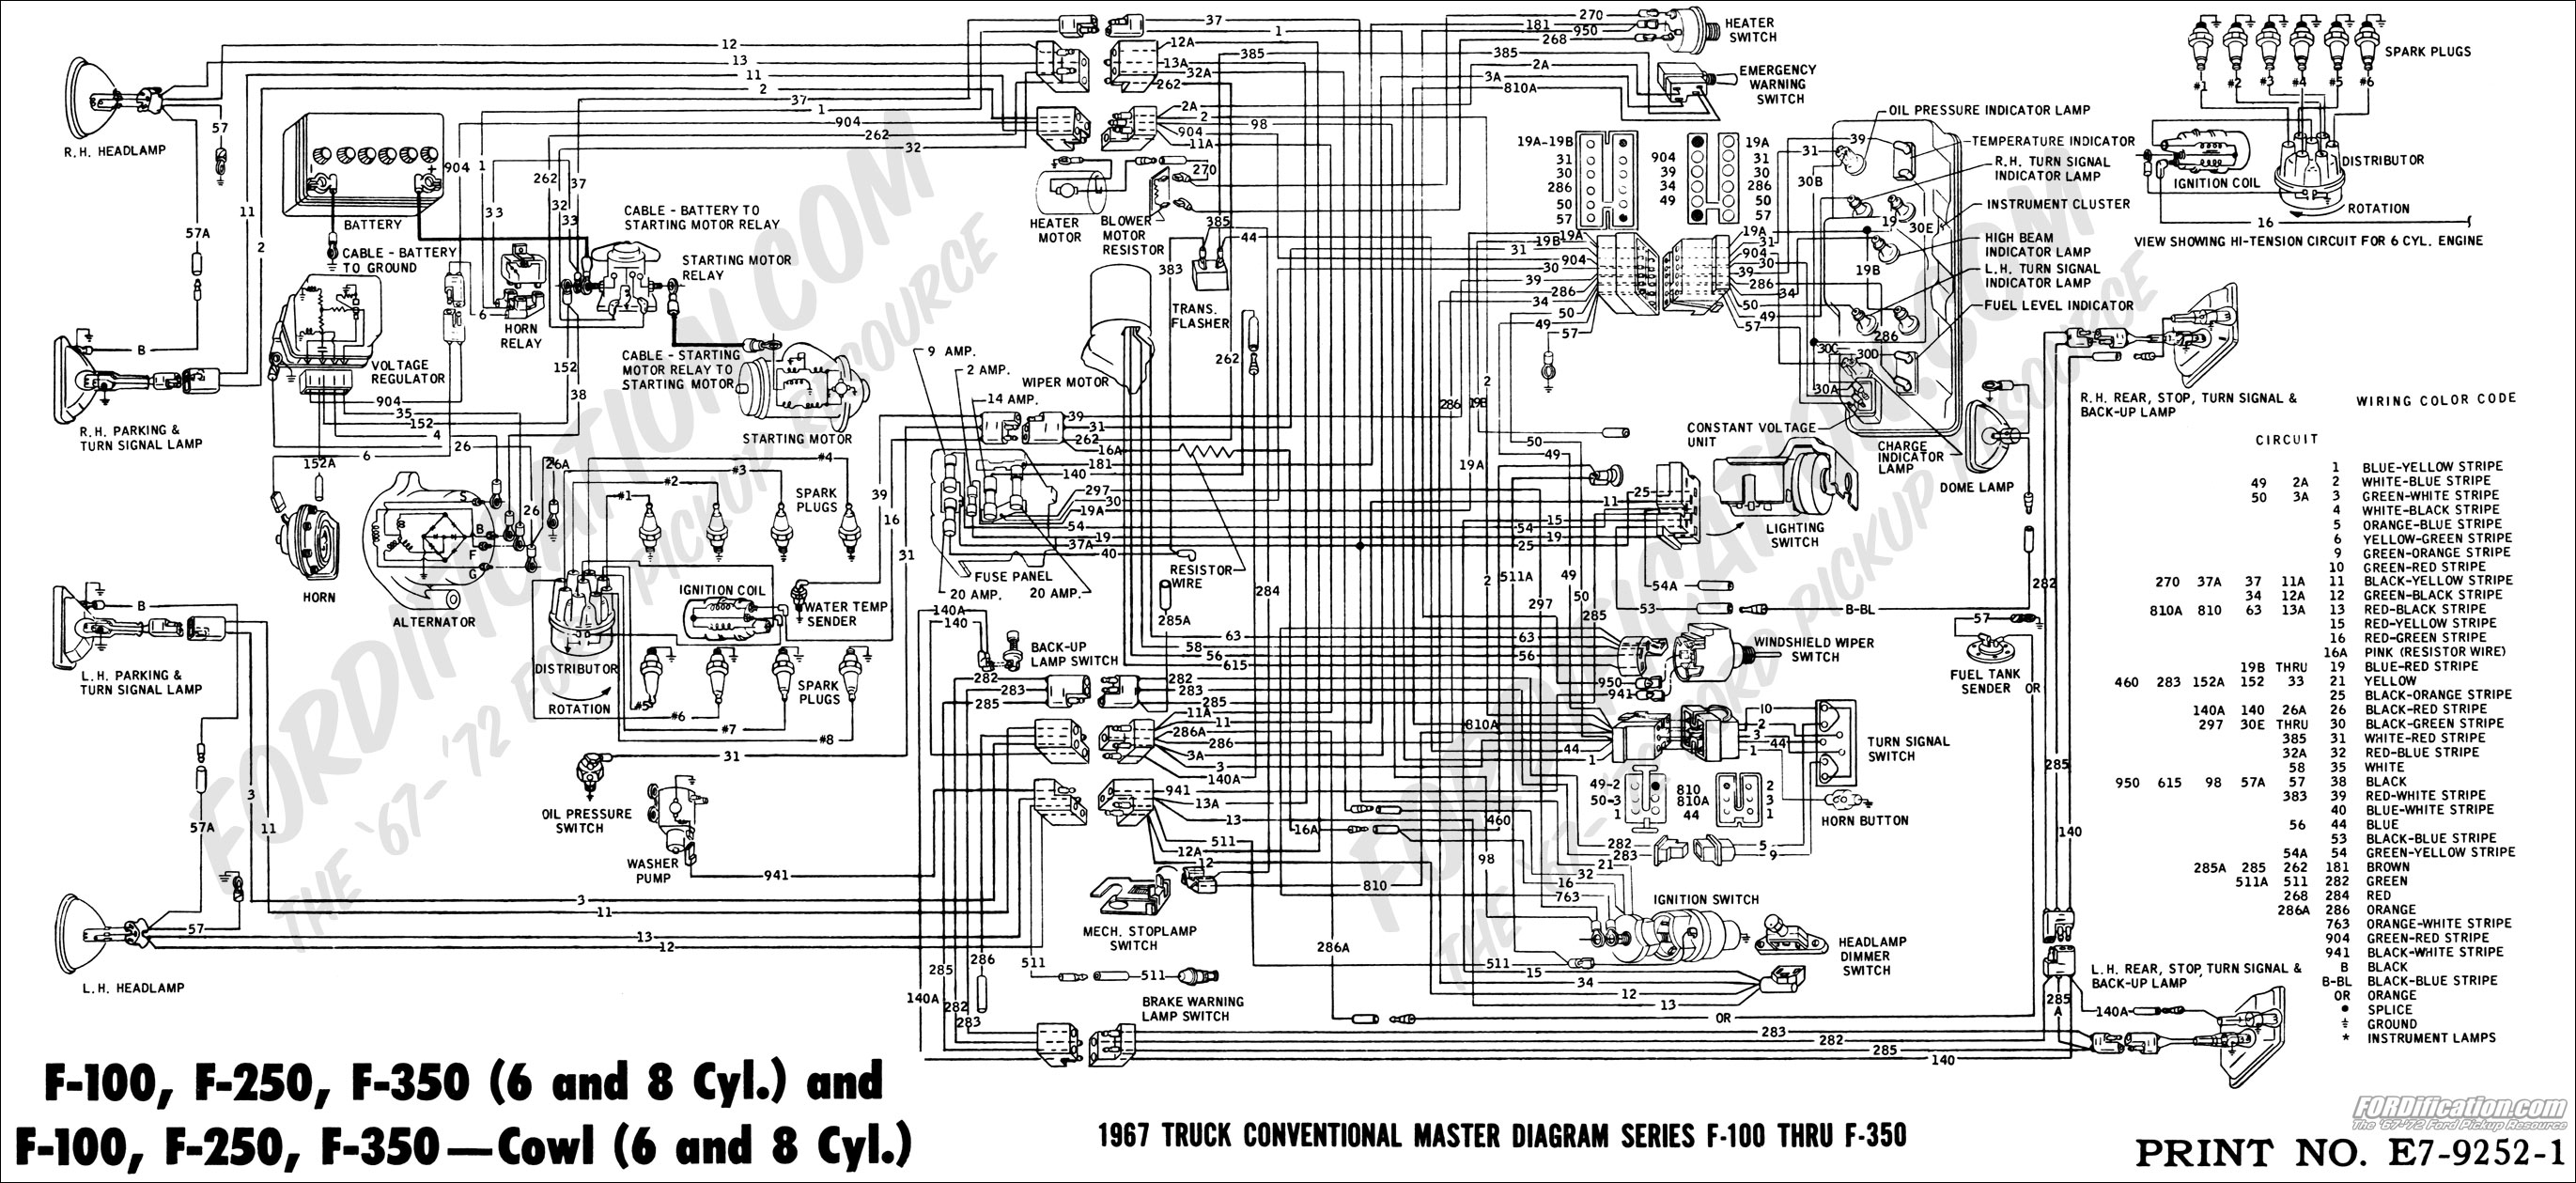 67masterdiagram 1998 ford f150 wiring diagram 1998 jeep grand cherokee wiring 1998 ford ranger electrical diagram at edmiracle.co